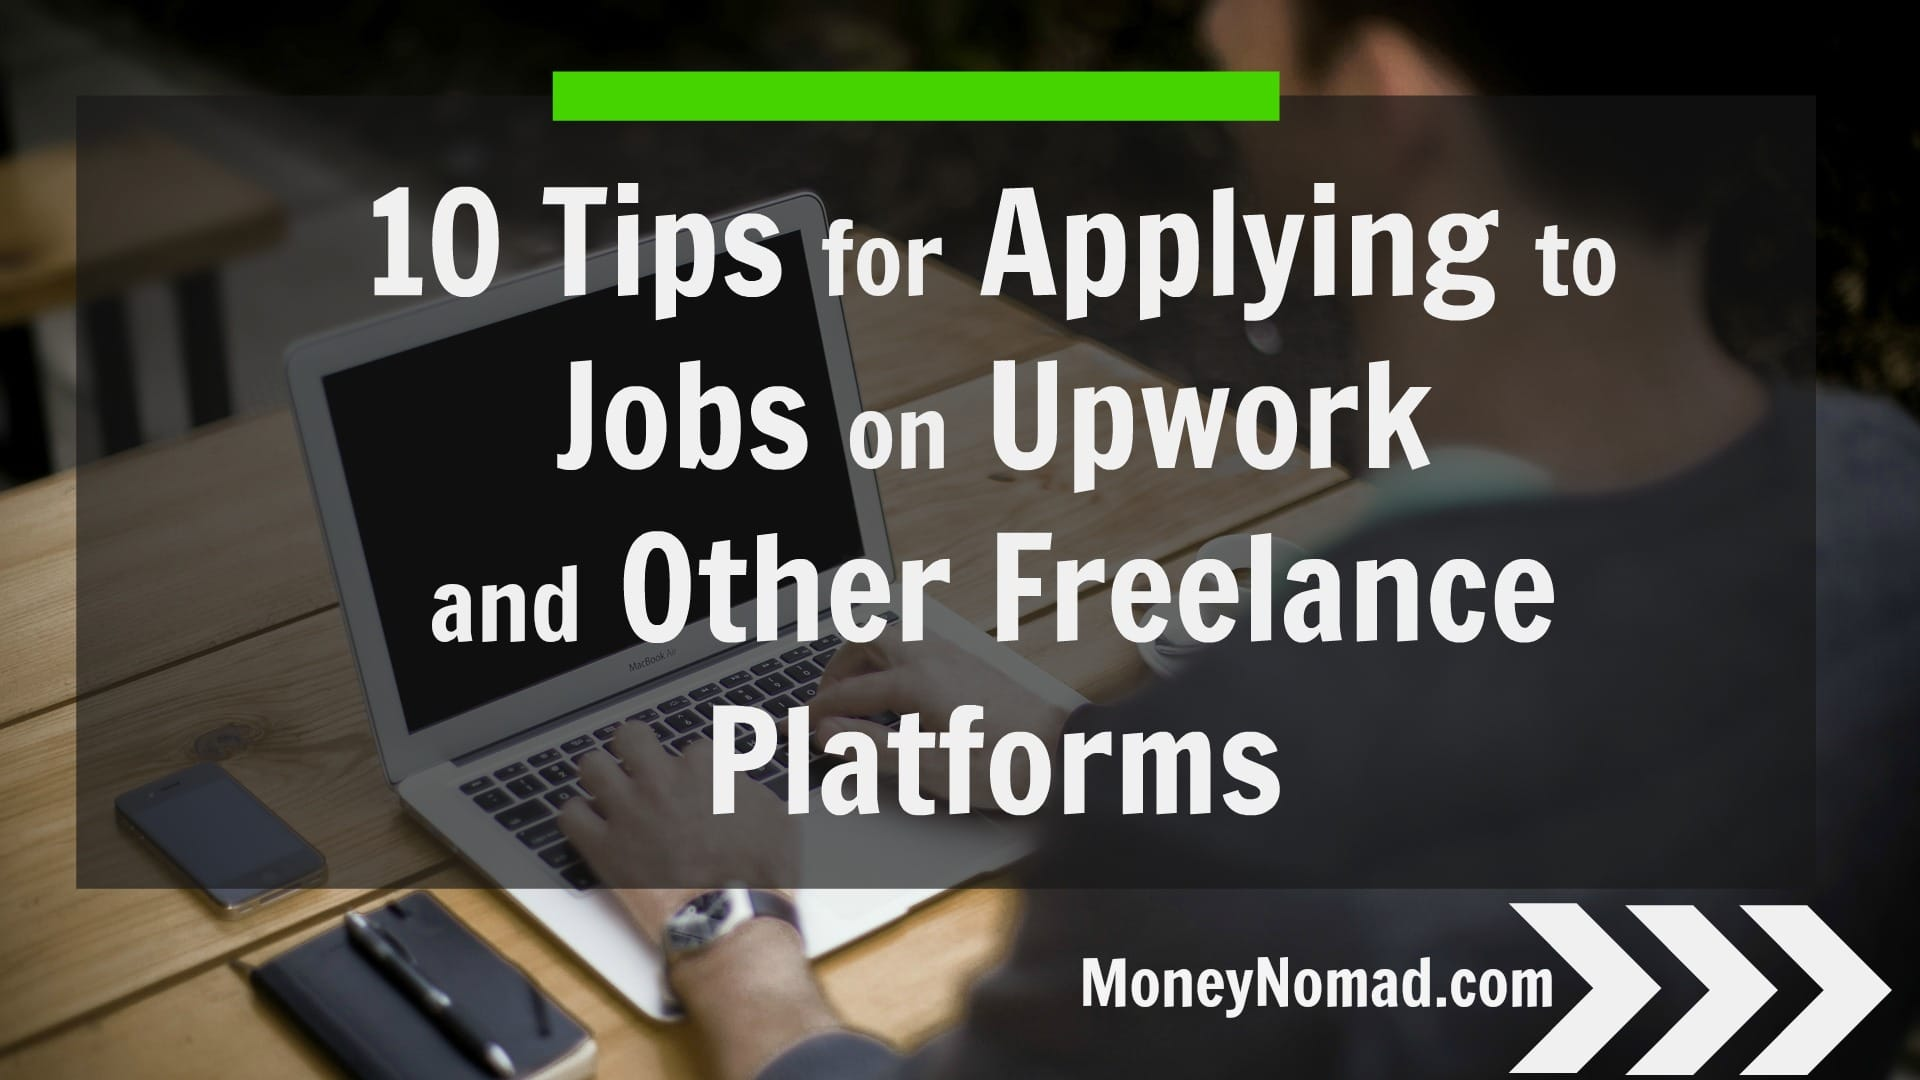 10 tips for applying to jobs on